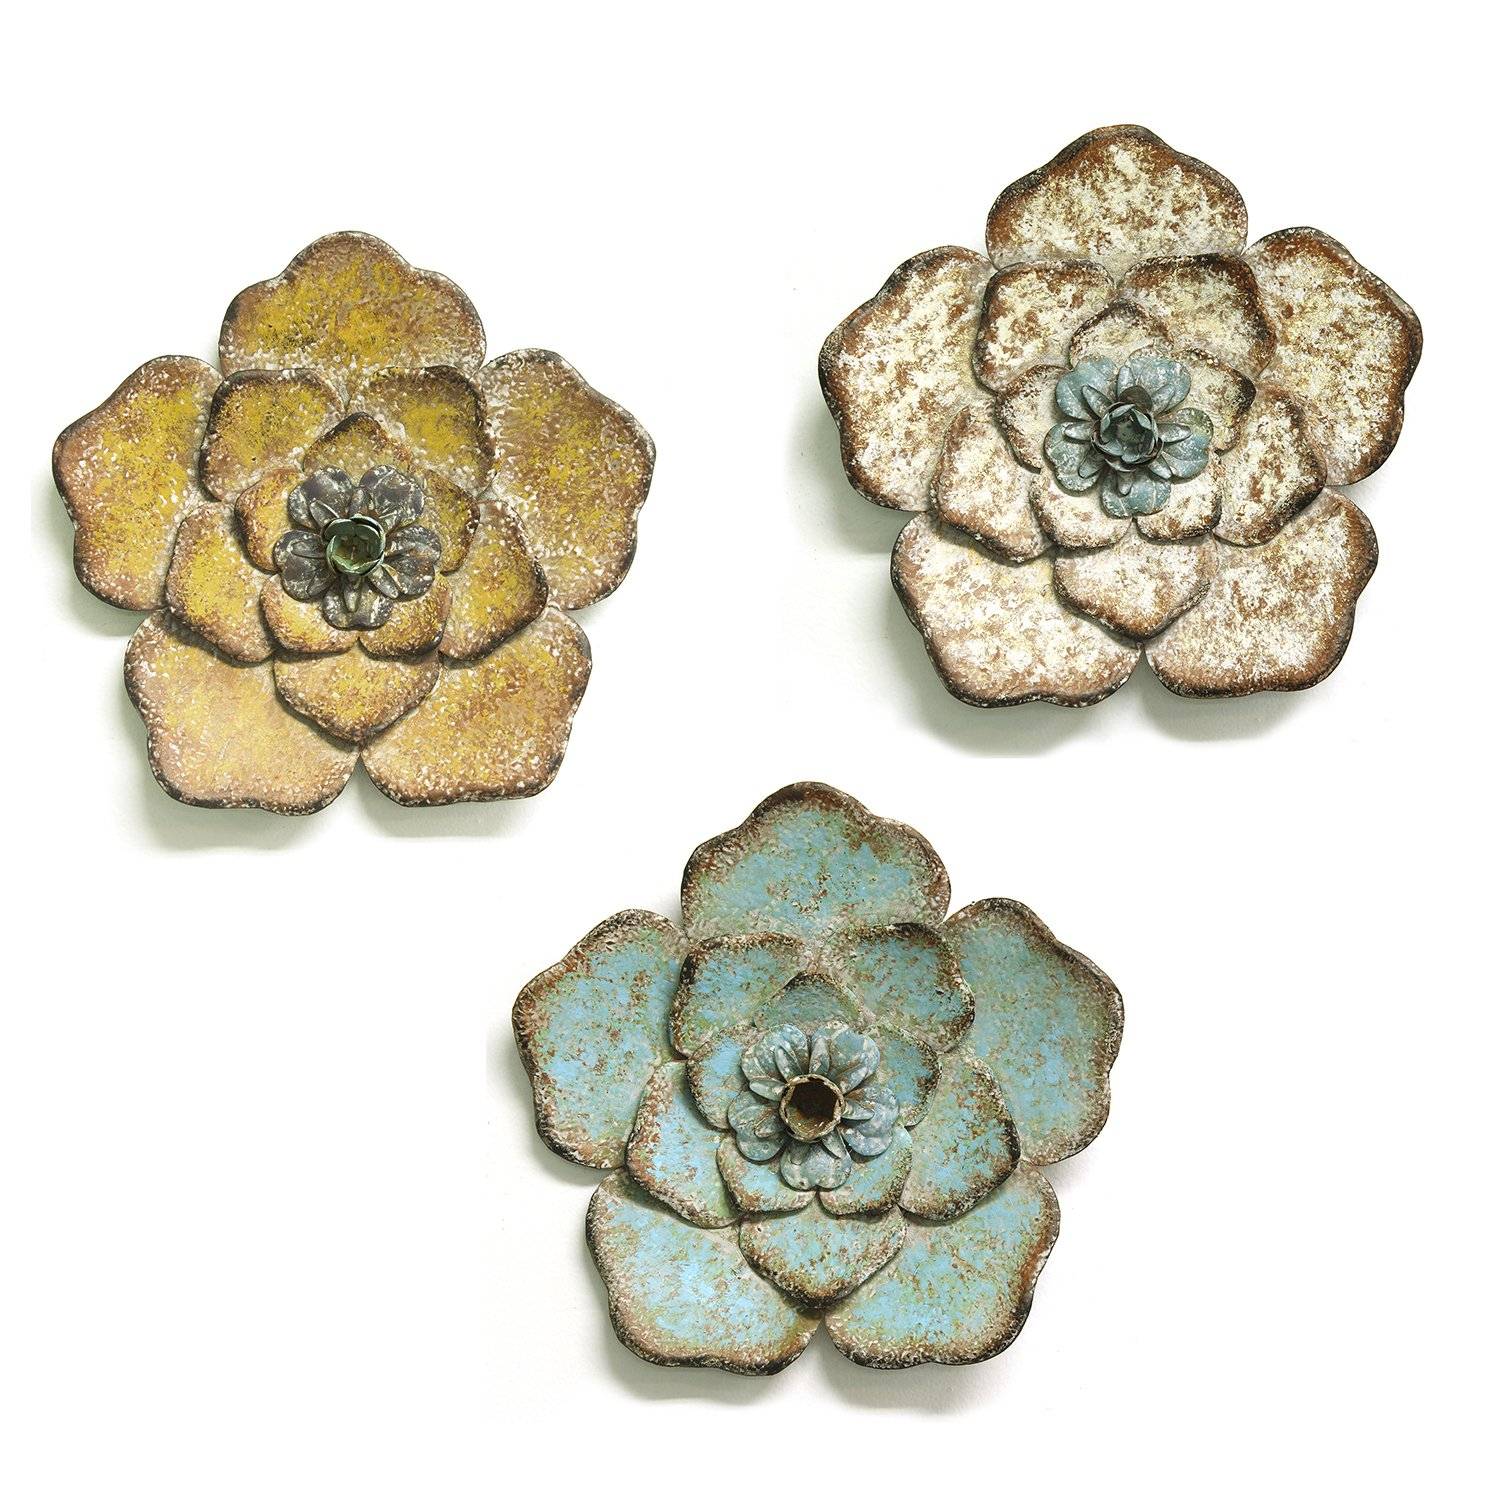 Stratton Home Decor Set of 3 Rustic Flower Wall Decor, Multicolor by Stratton Home Decor